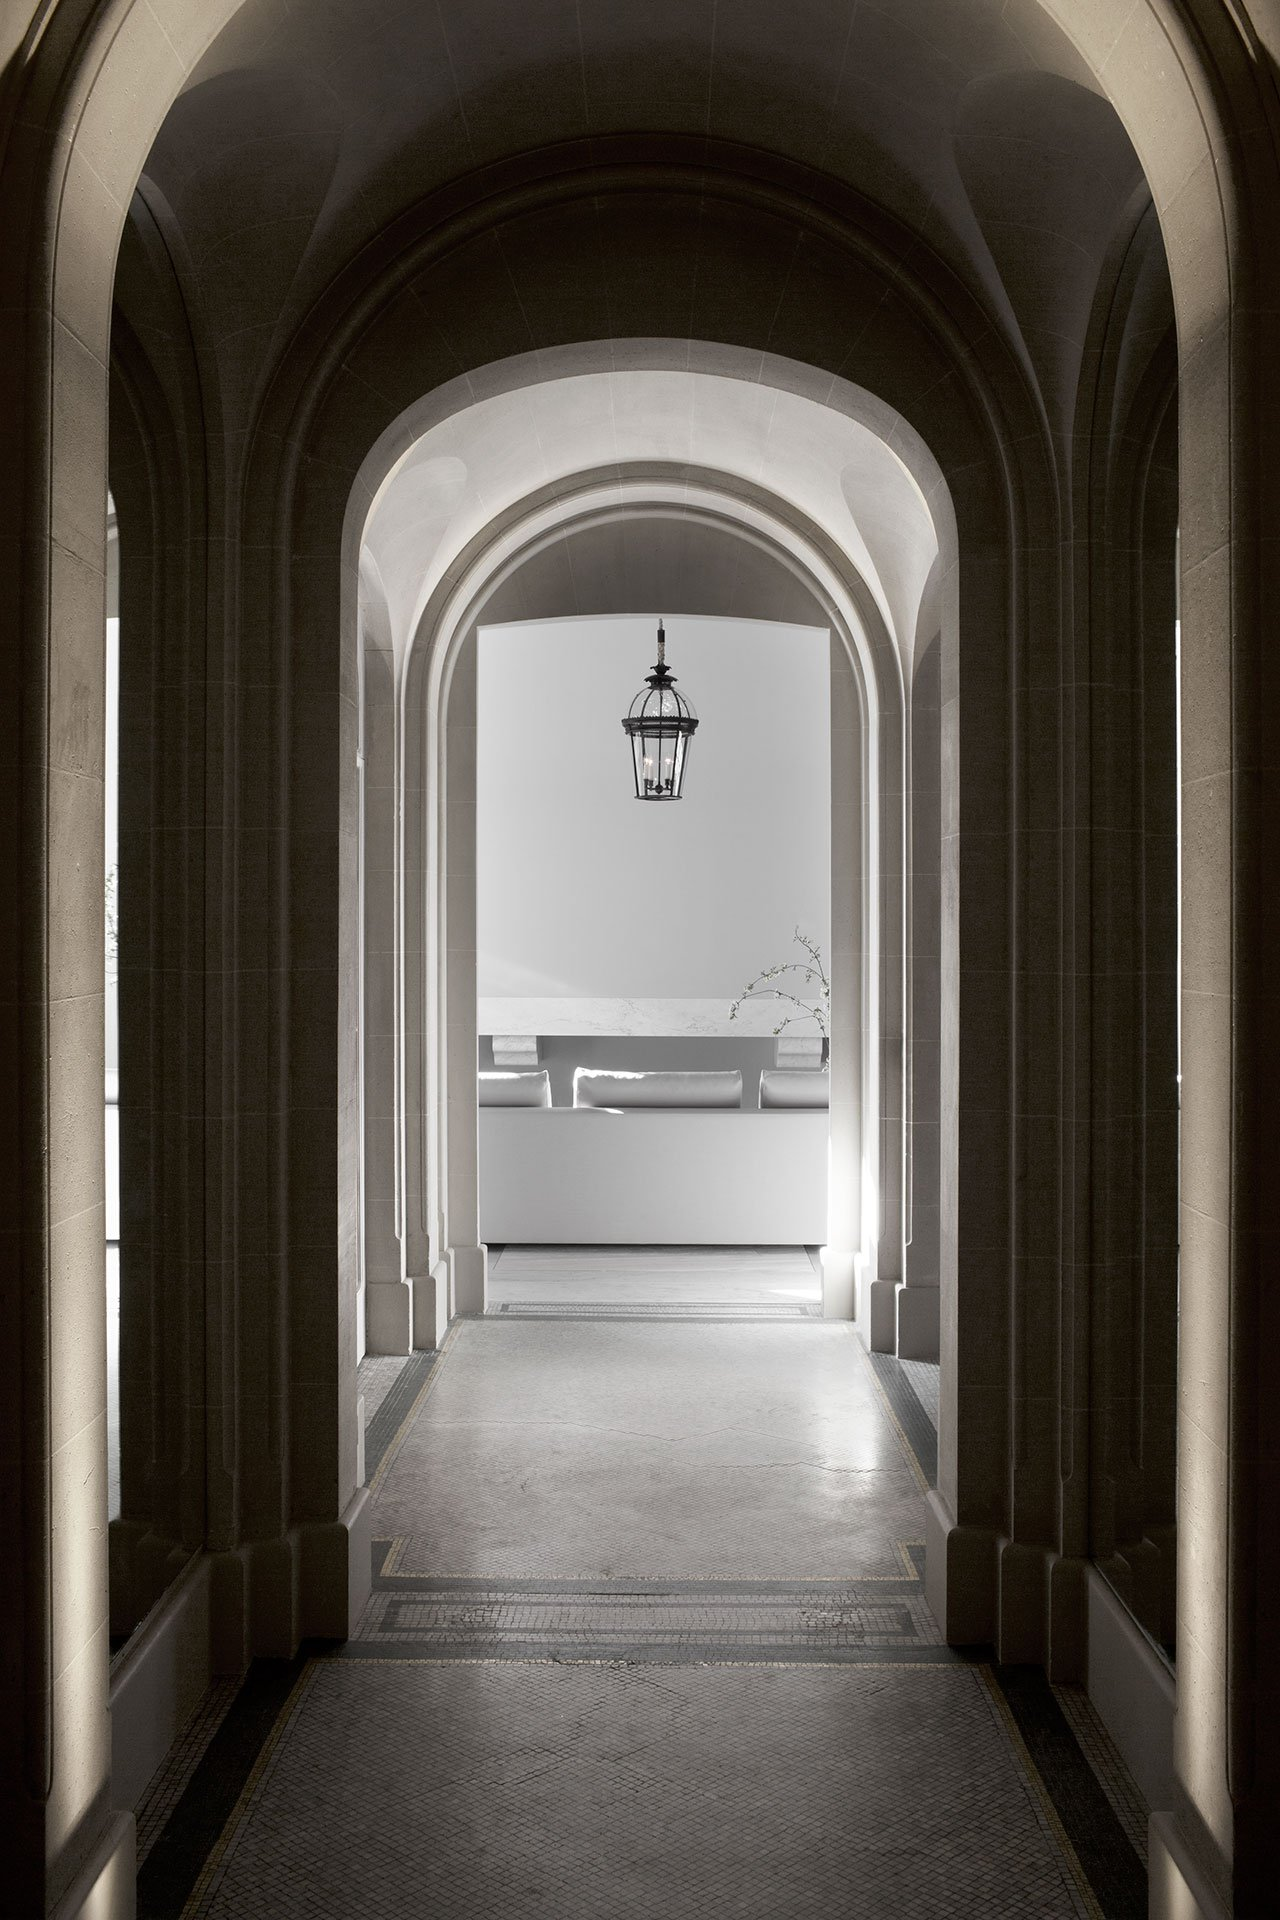 Arched windows and walkways add elegance to the apartment